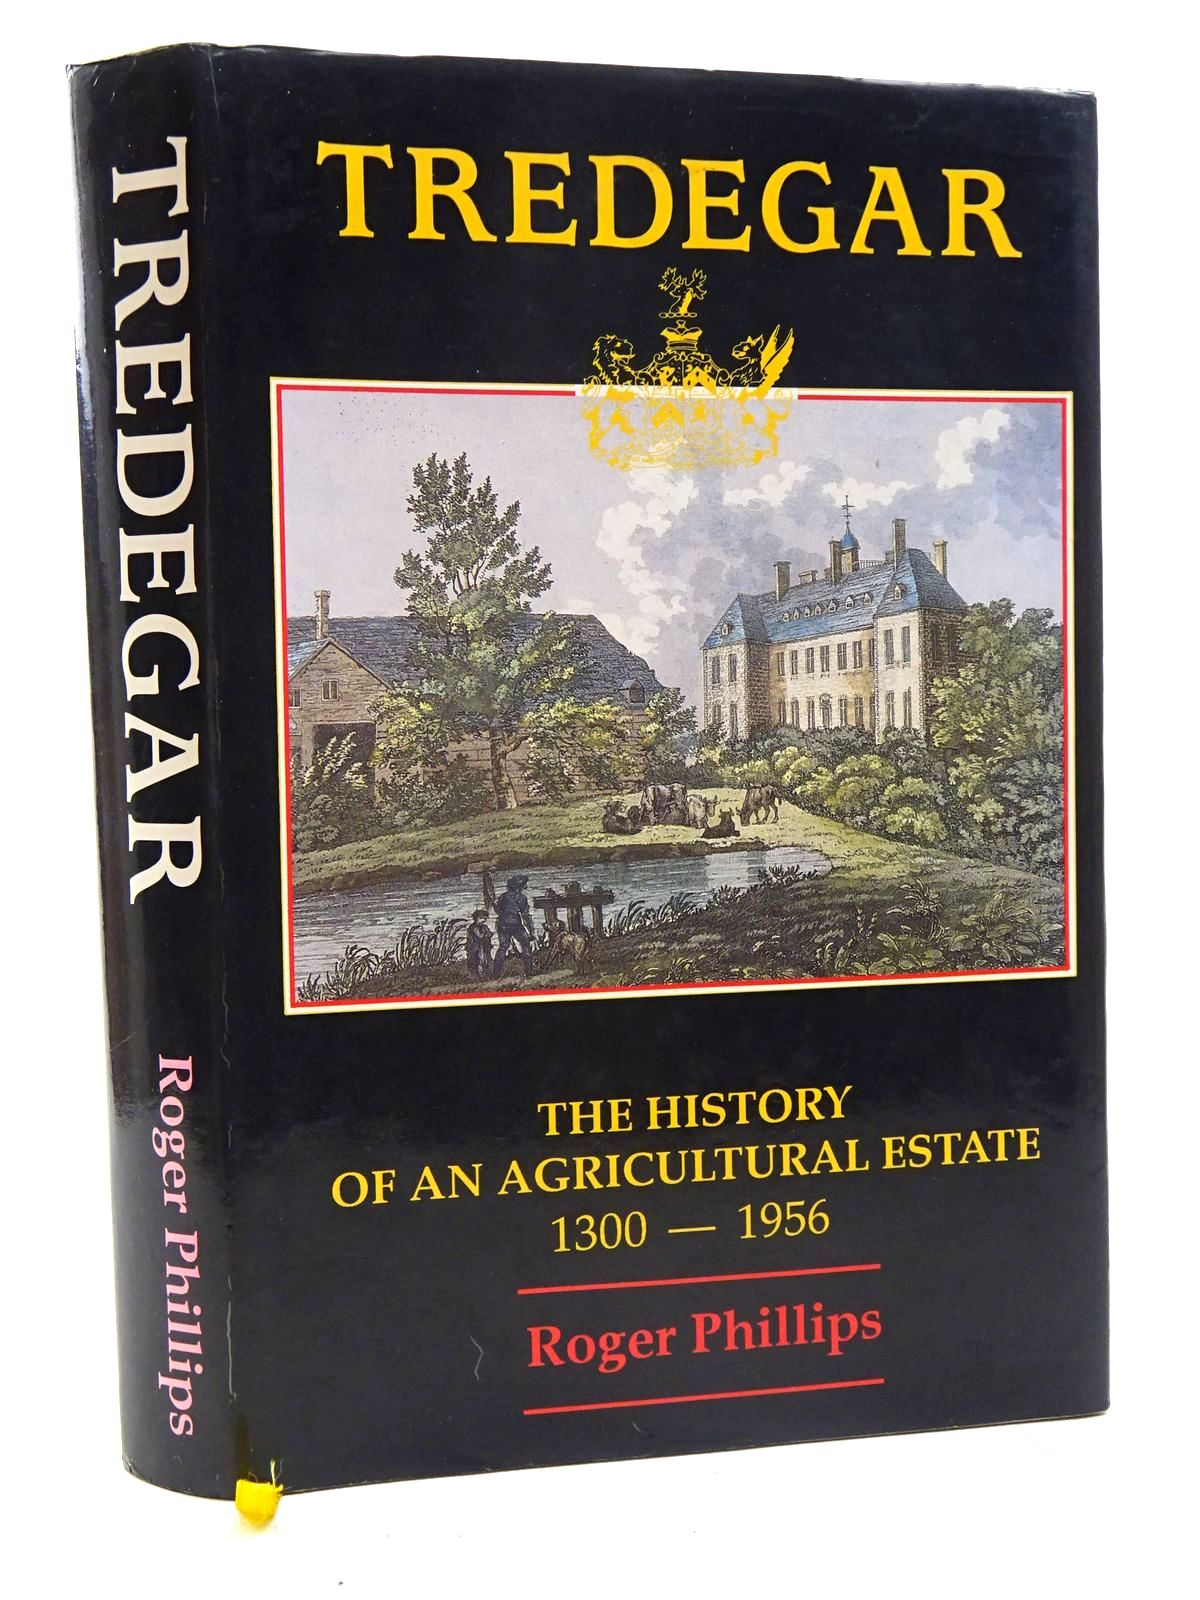 Photo of TREDEGAR THE HISTORY OF AN AGRICULTURAL ESTATE 1300 - 1956 written by Phillips, Roger published by Tredegar Memorial Trust (STOCK CODE: 2125937)  for sale by Stella & Rose's Books